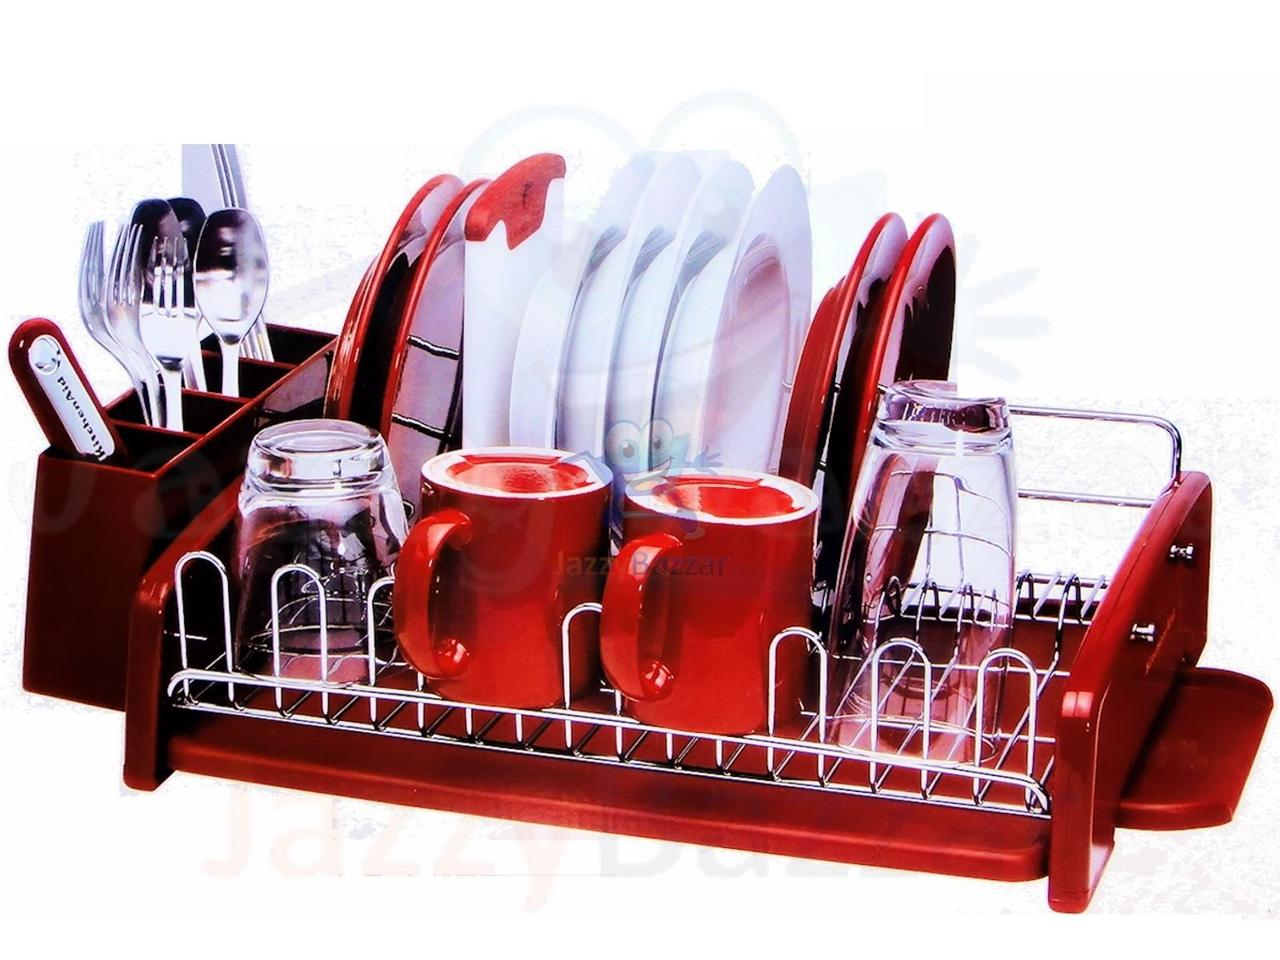 stainless steel kitchen bench dish plate drying rack drainer tray cup holder new ebay. Black Bedroom Furniture Sets. Home Design Ideas